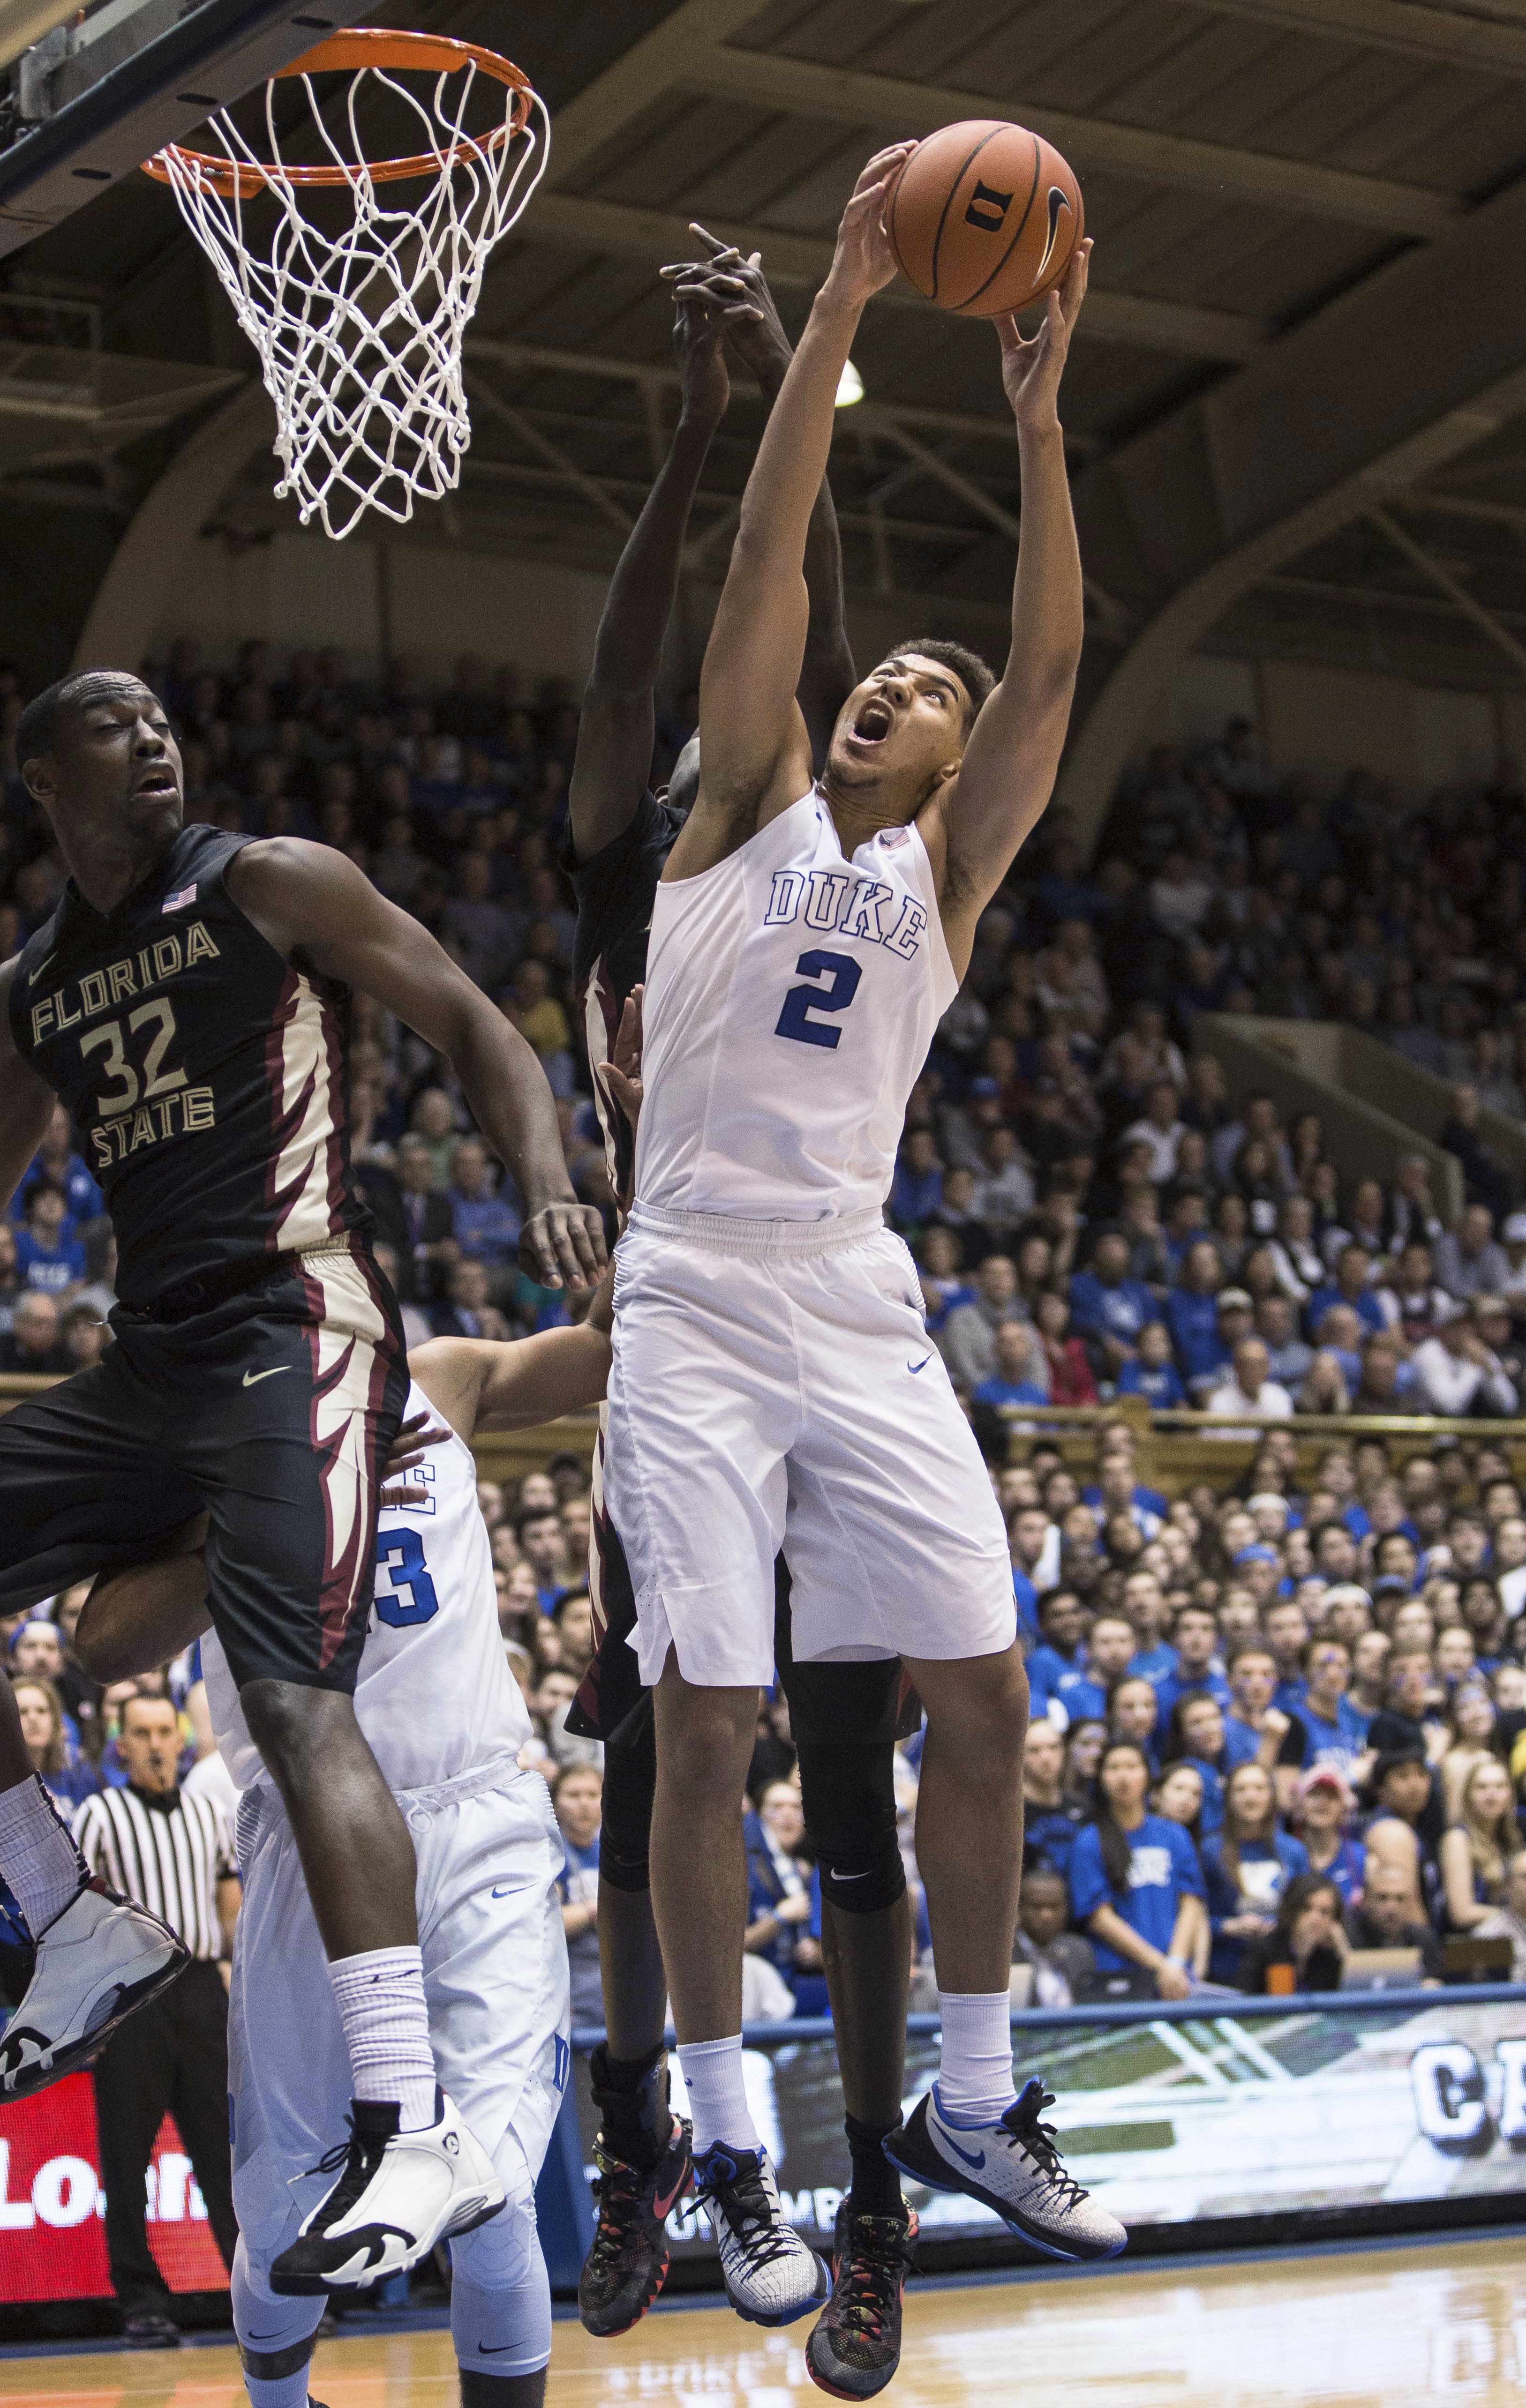 Duke's Chase Jeter (2) goes up for a rebound against Florida State's Montay Brandon (32) during the first half of an NCAA college basketball game in Durham, N.C., Thursday, Feb. 25, 2016. (AP Photo/Ben McKeown)